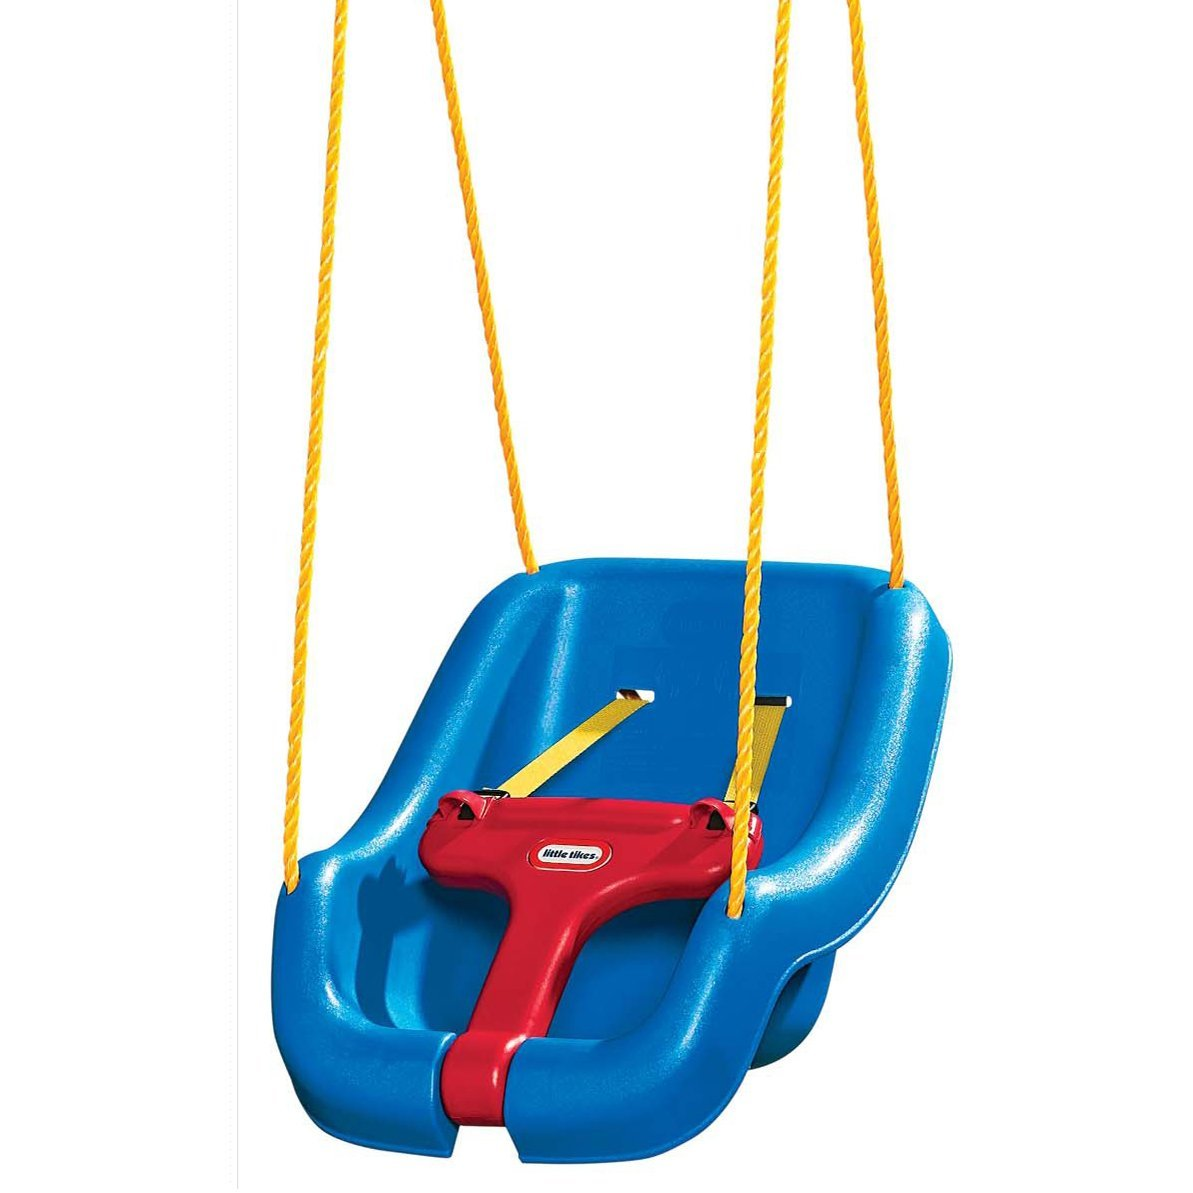 Little Tikes 2-in-1 Swing